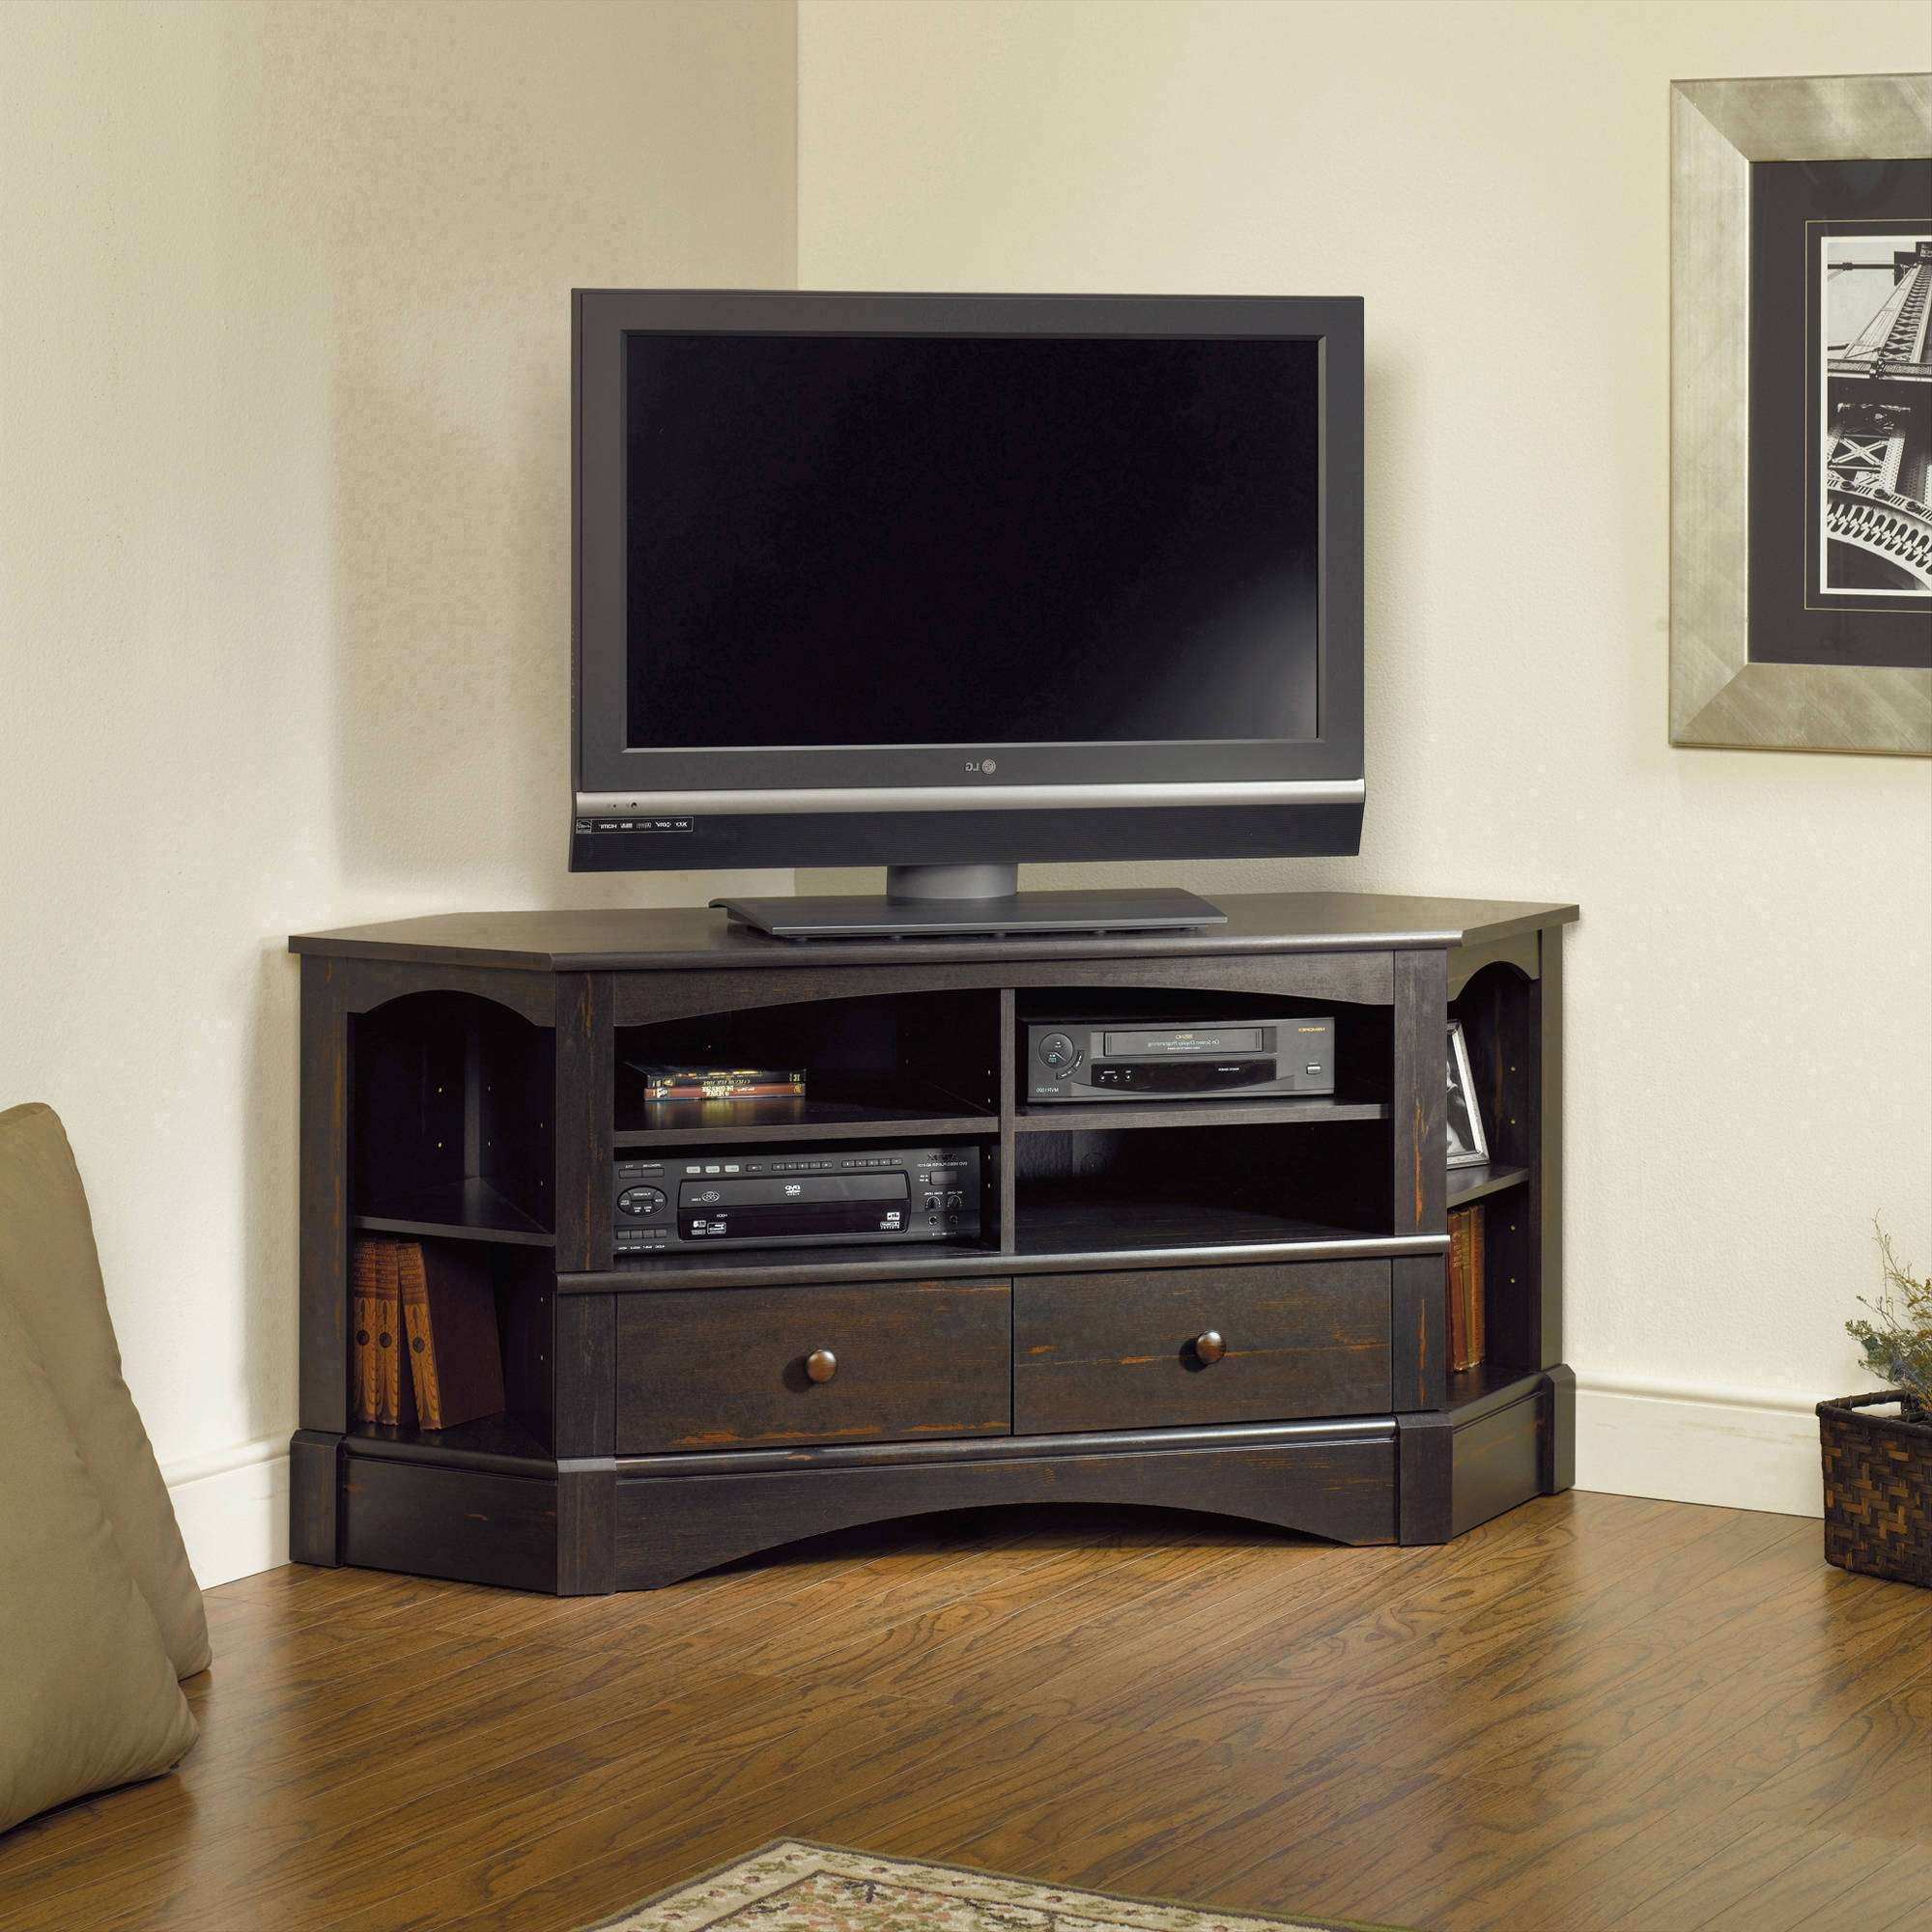 Wall Units: Amusing Walmart Tv Stands And Entertainment Centers Tv Within Corner Tv Cabinets With Hutch (View 11 of 20)